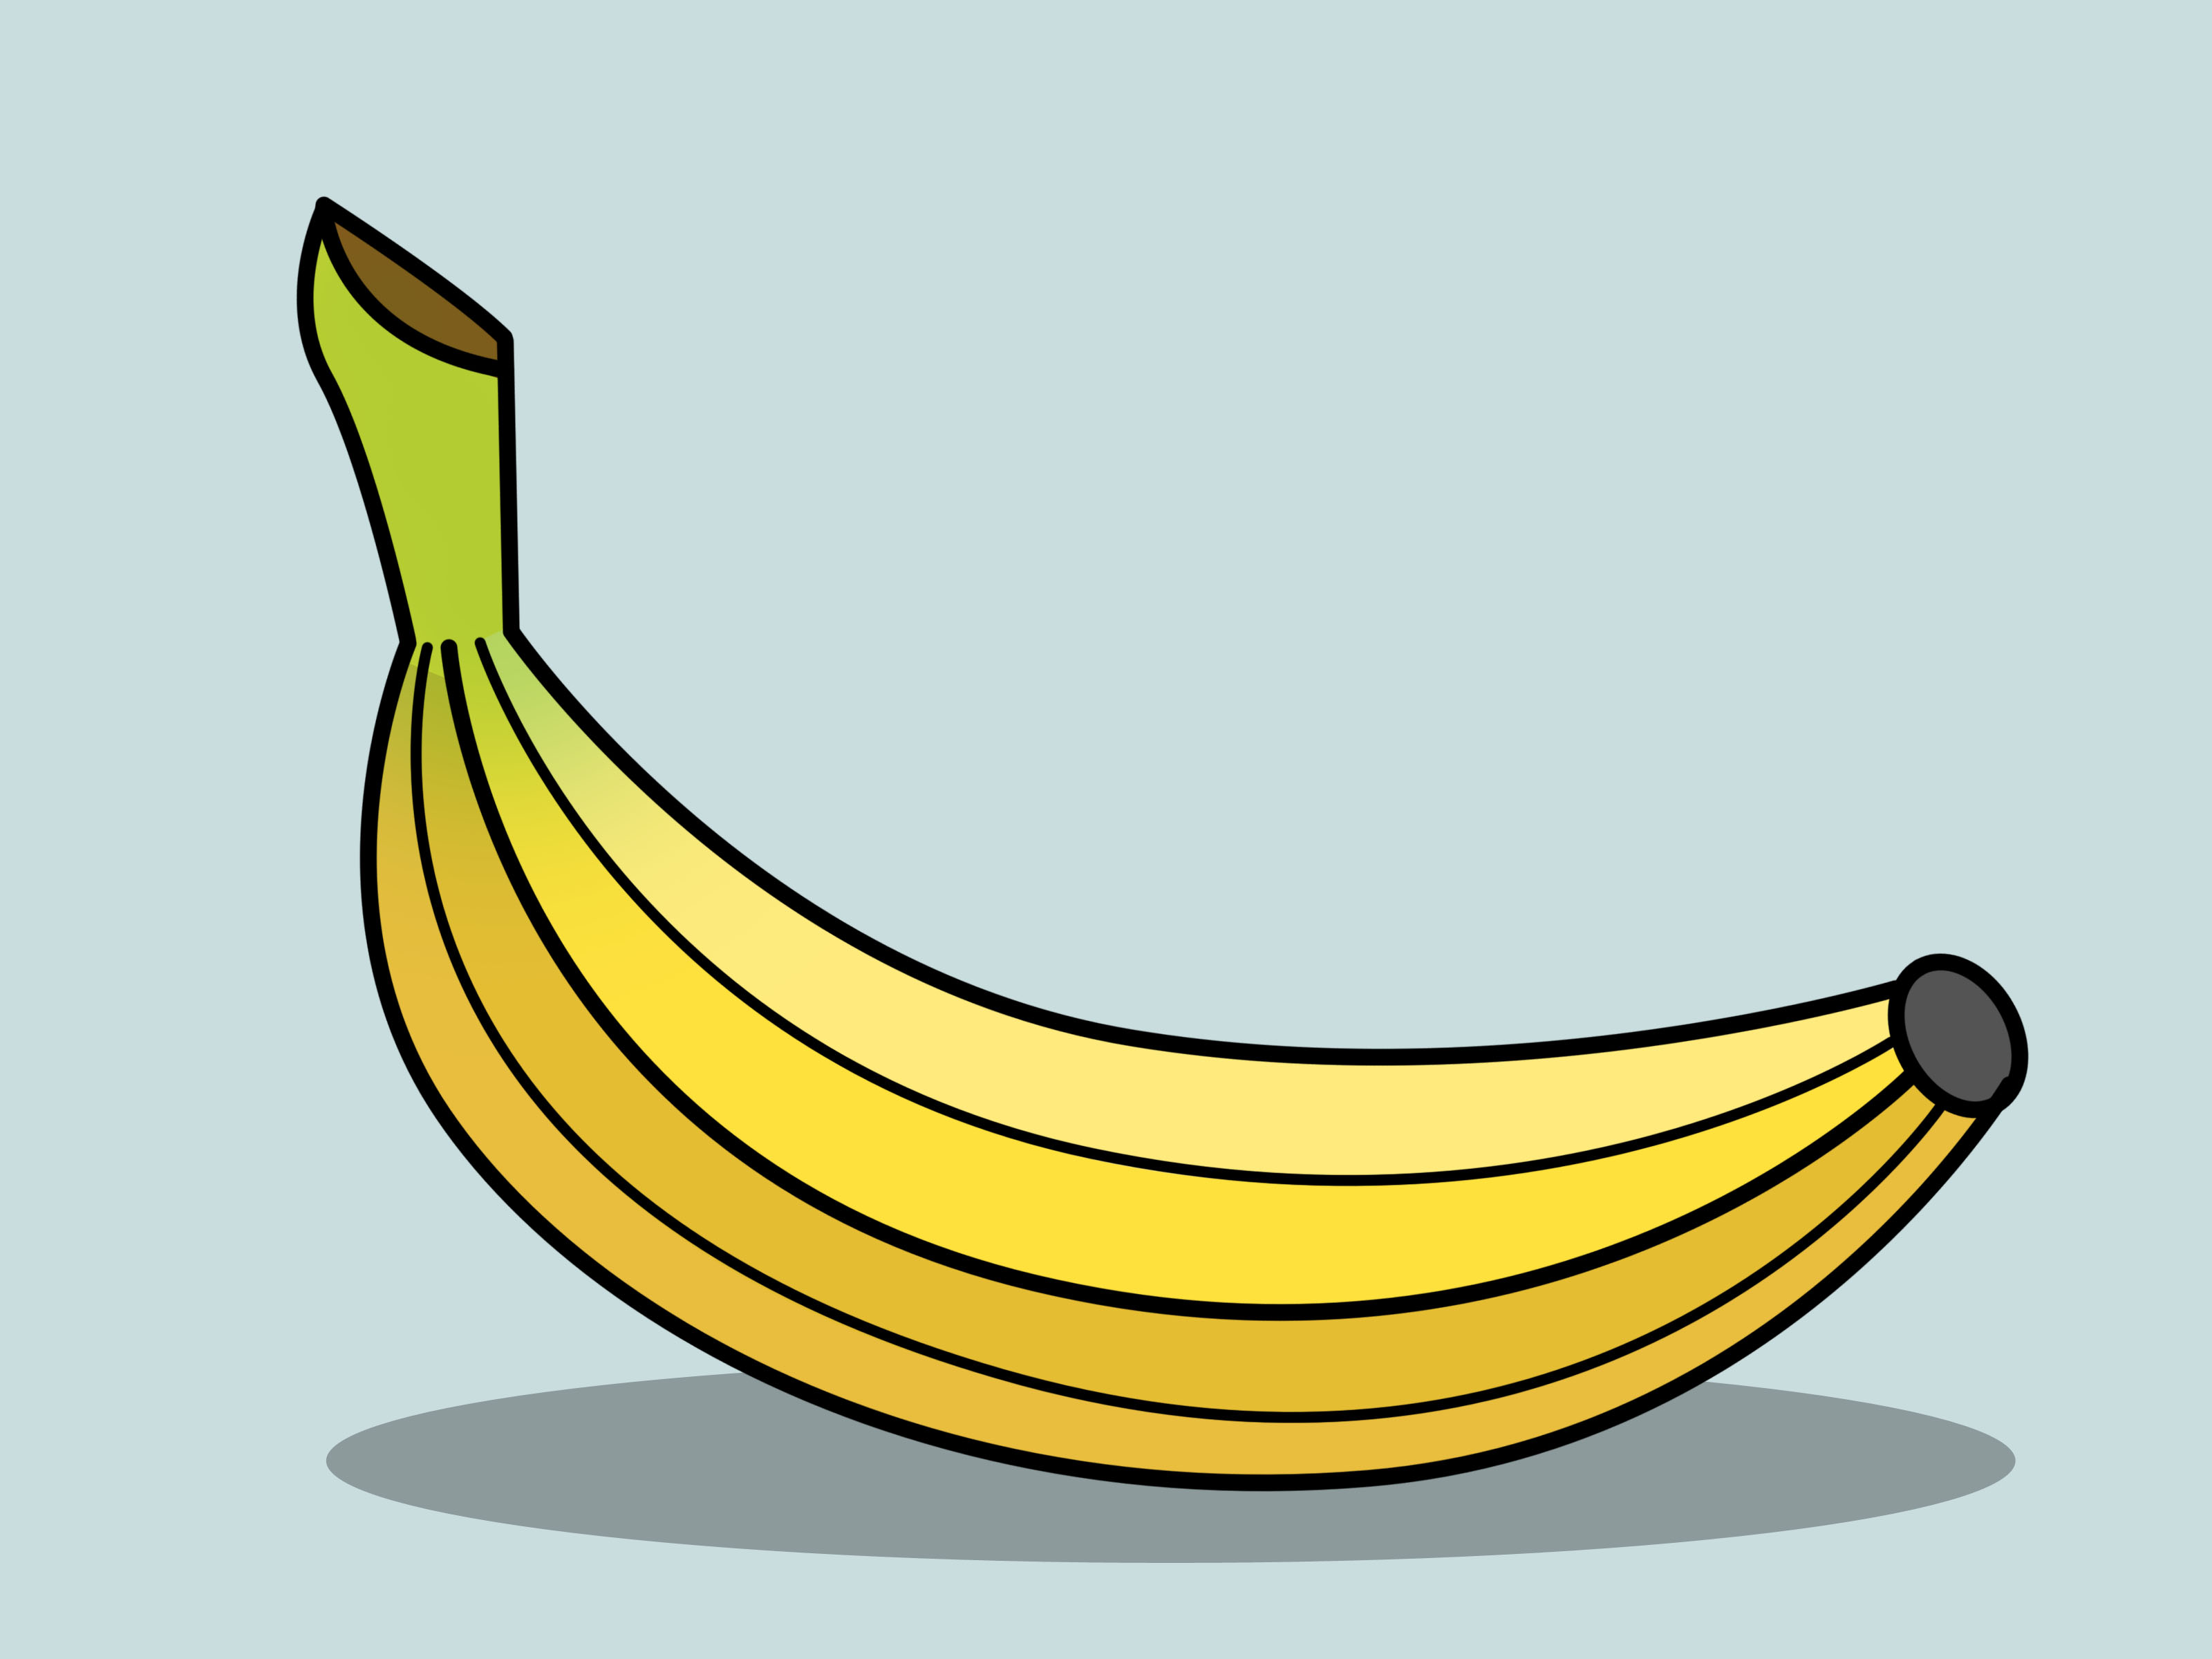 3200x2400 How To Draw A Banana 14 Steps (With Pictures)